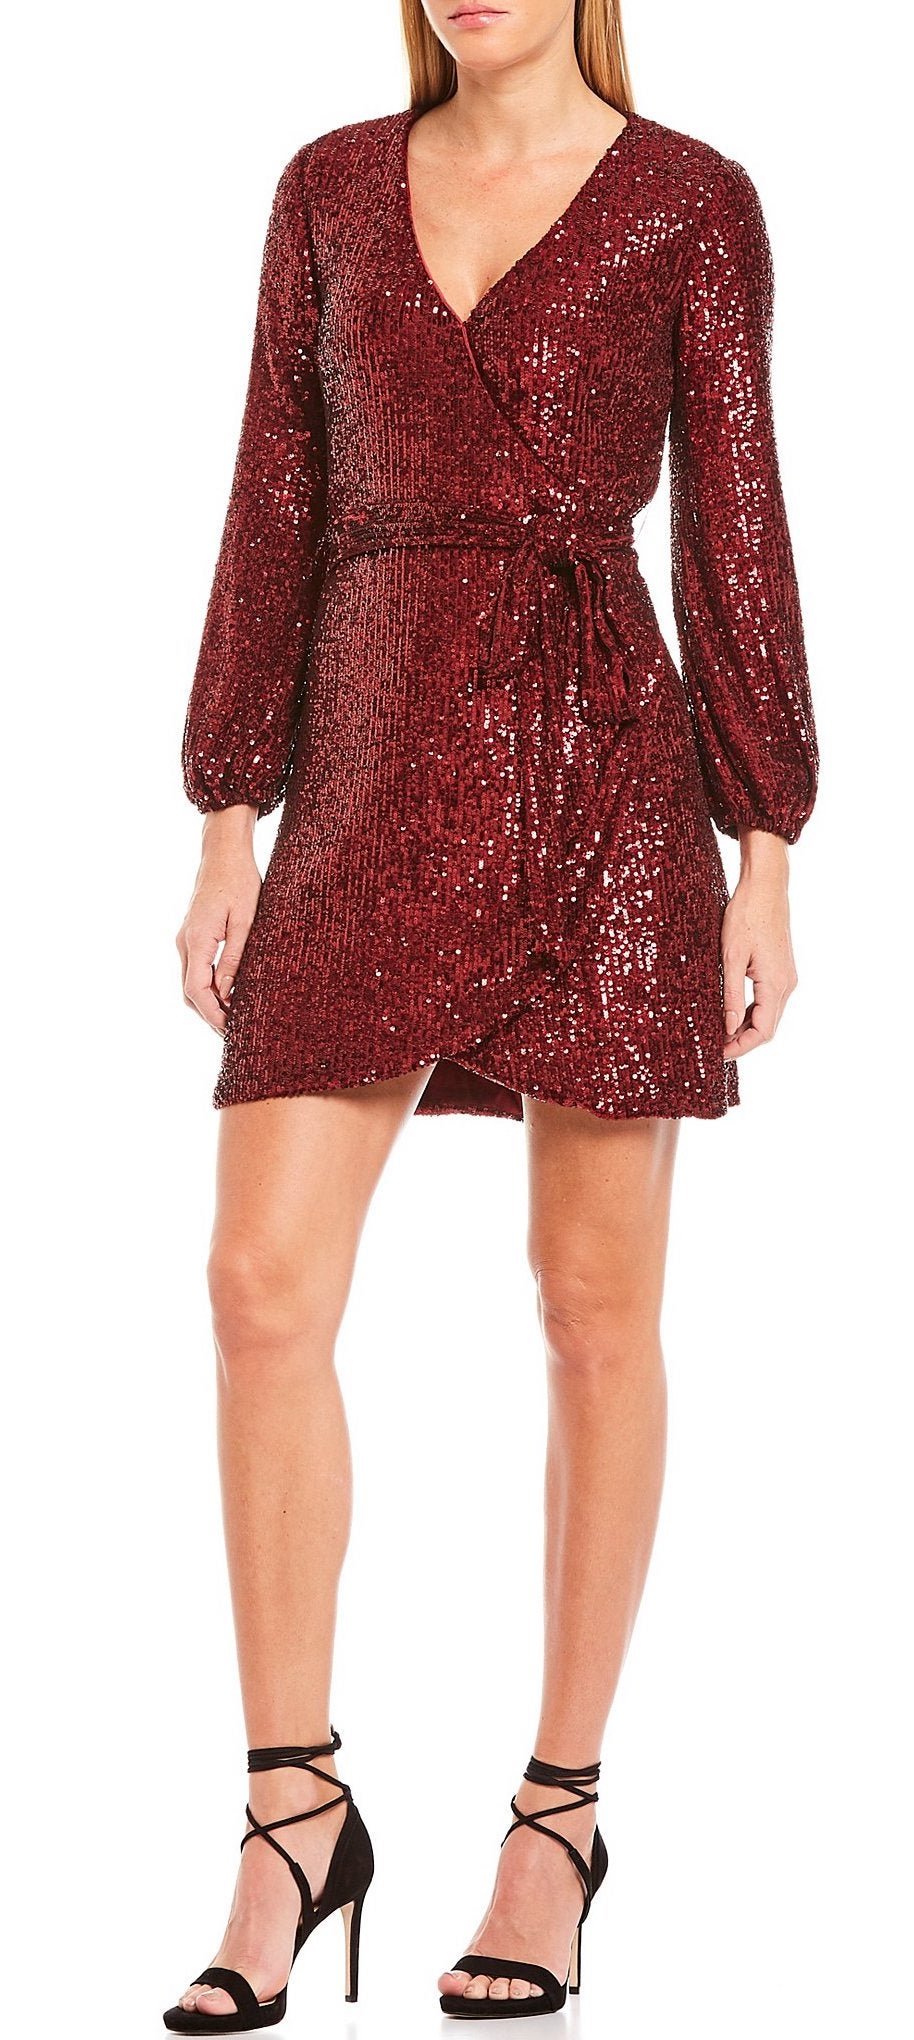 Gianni Bini Moor Allover Sequin Long Sleeve Wrap Dress